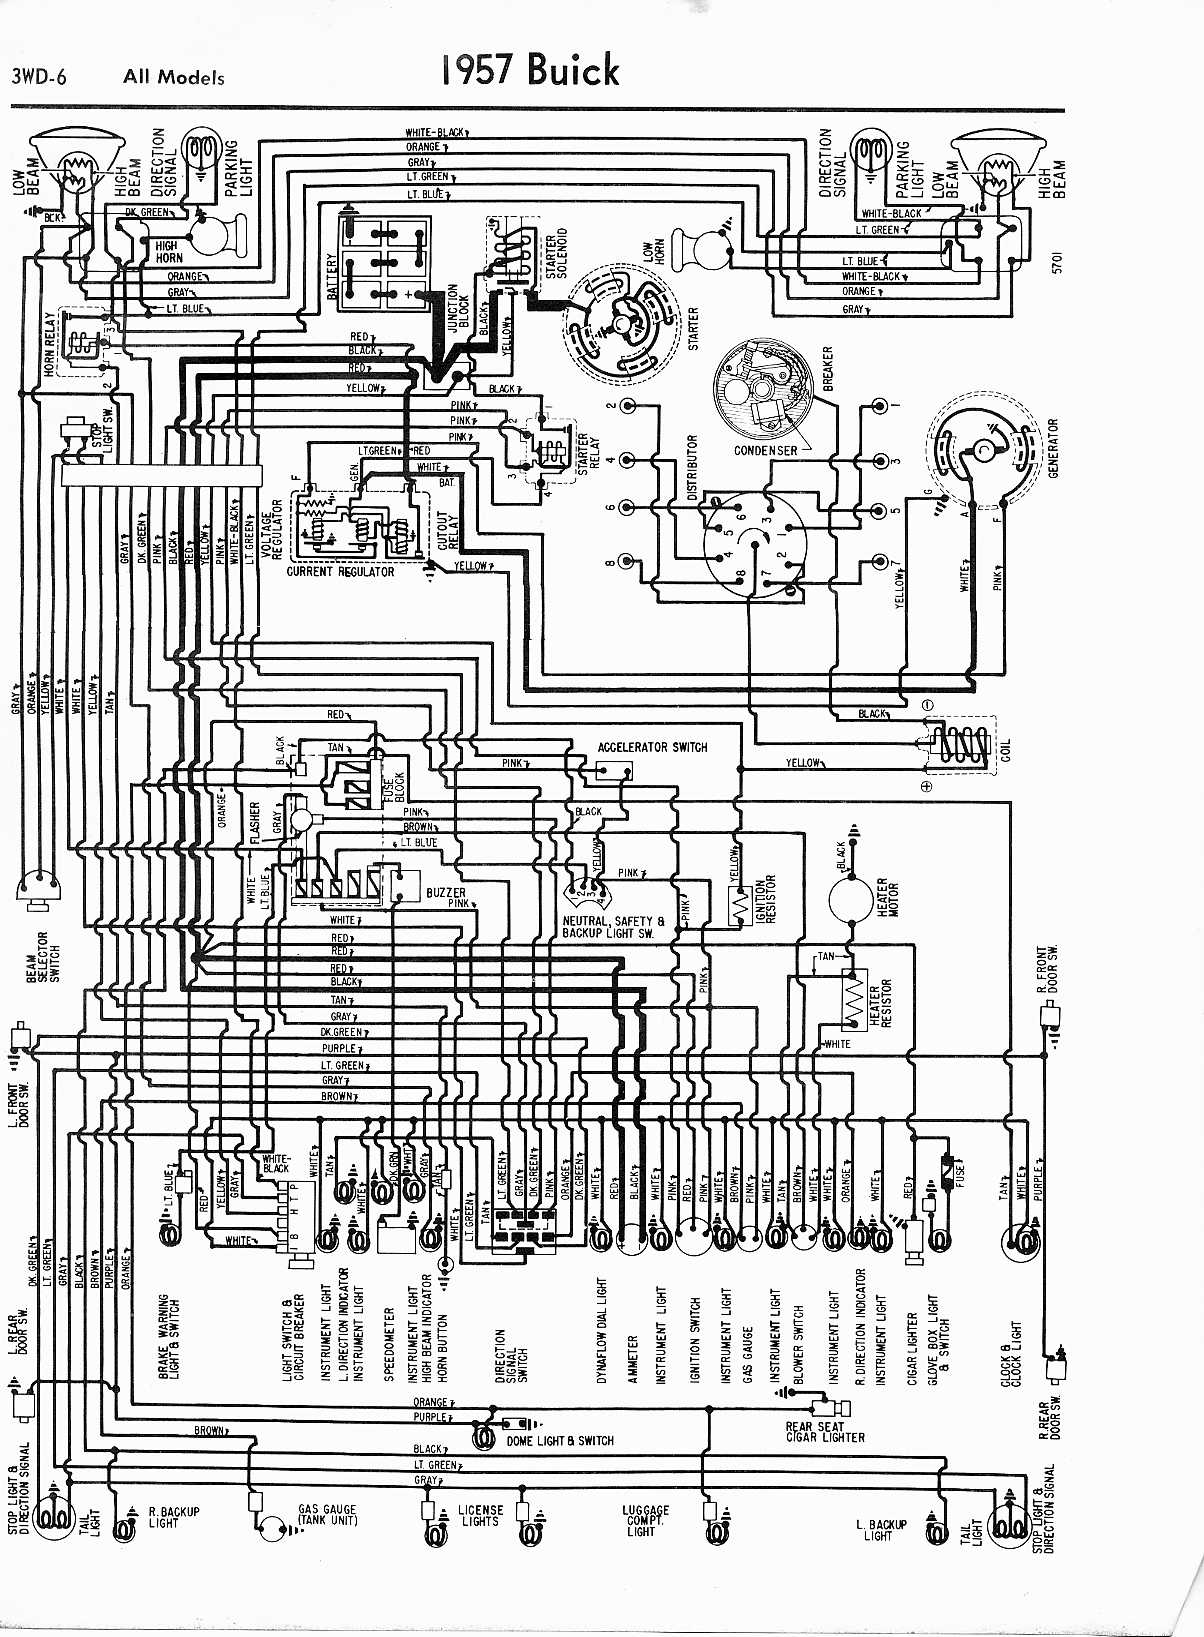 buick headlight wiring everything wiring diagrambuick headlight wiring  wiring diagram 2005 buick lacrosse headlight wiring diagram